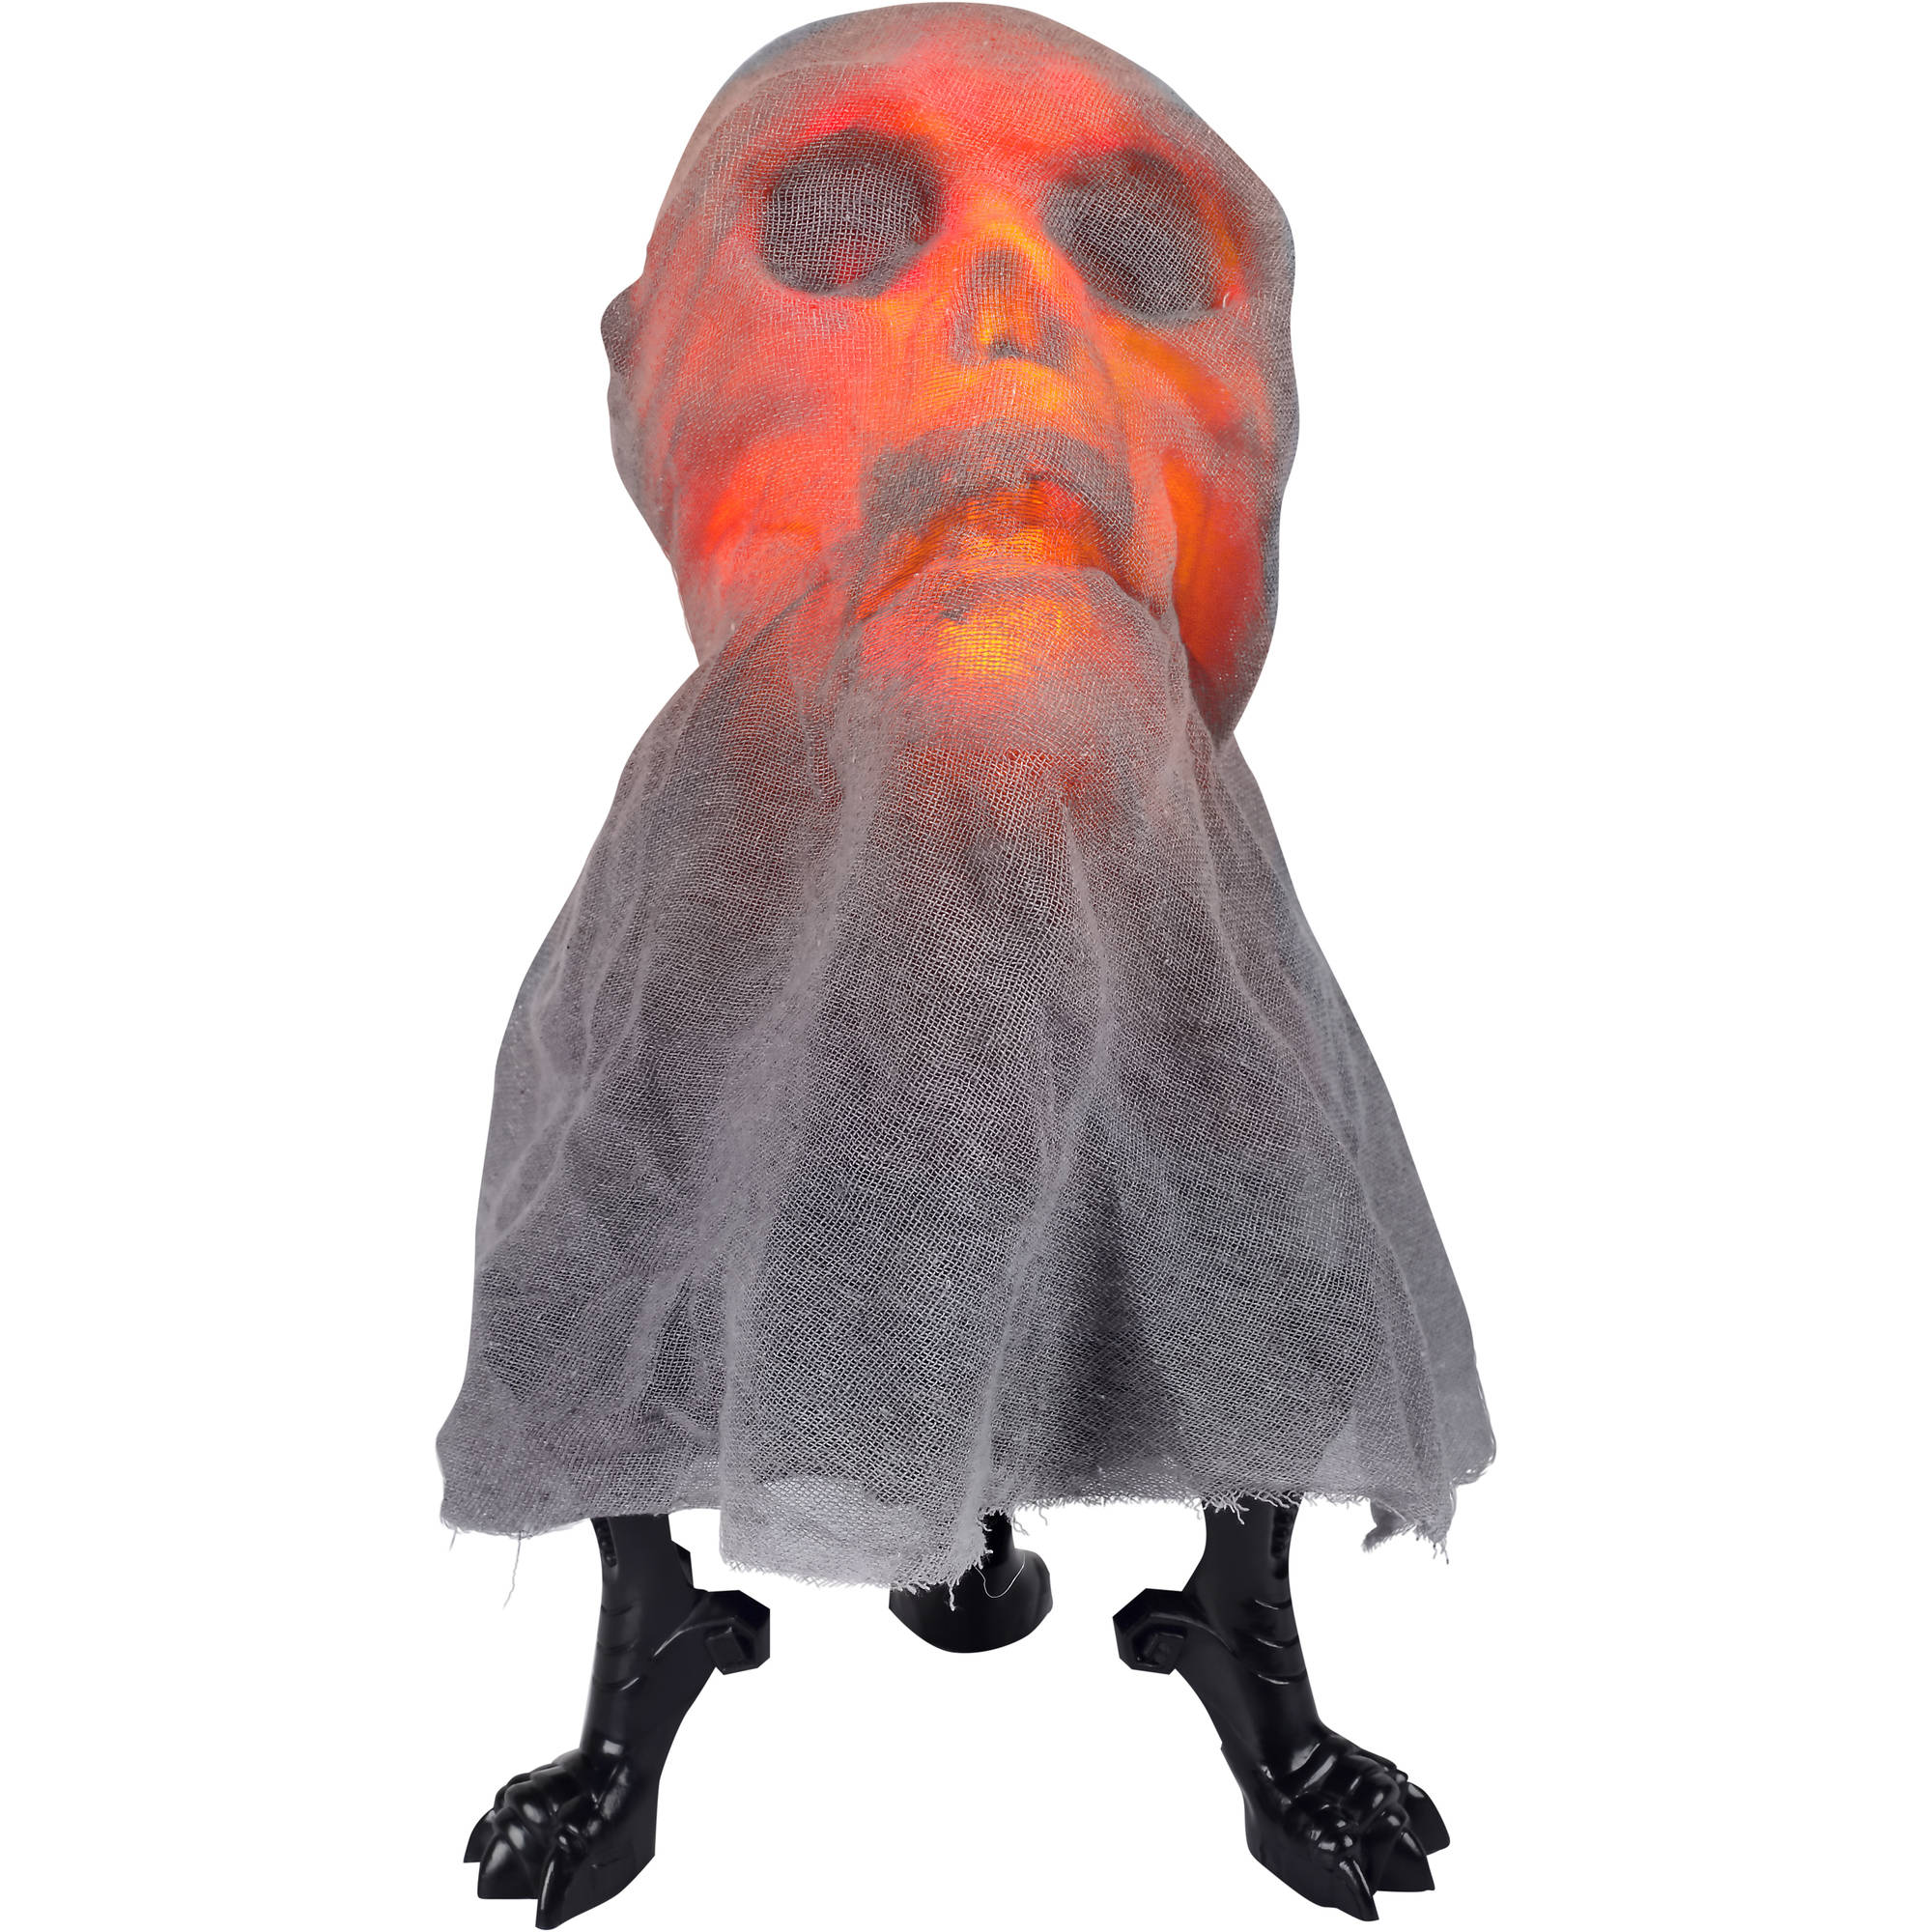 Animated Lightshow Tabletop Fire and Ice Skull Head Halloween Decoration